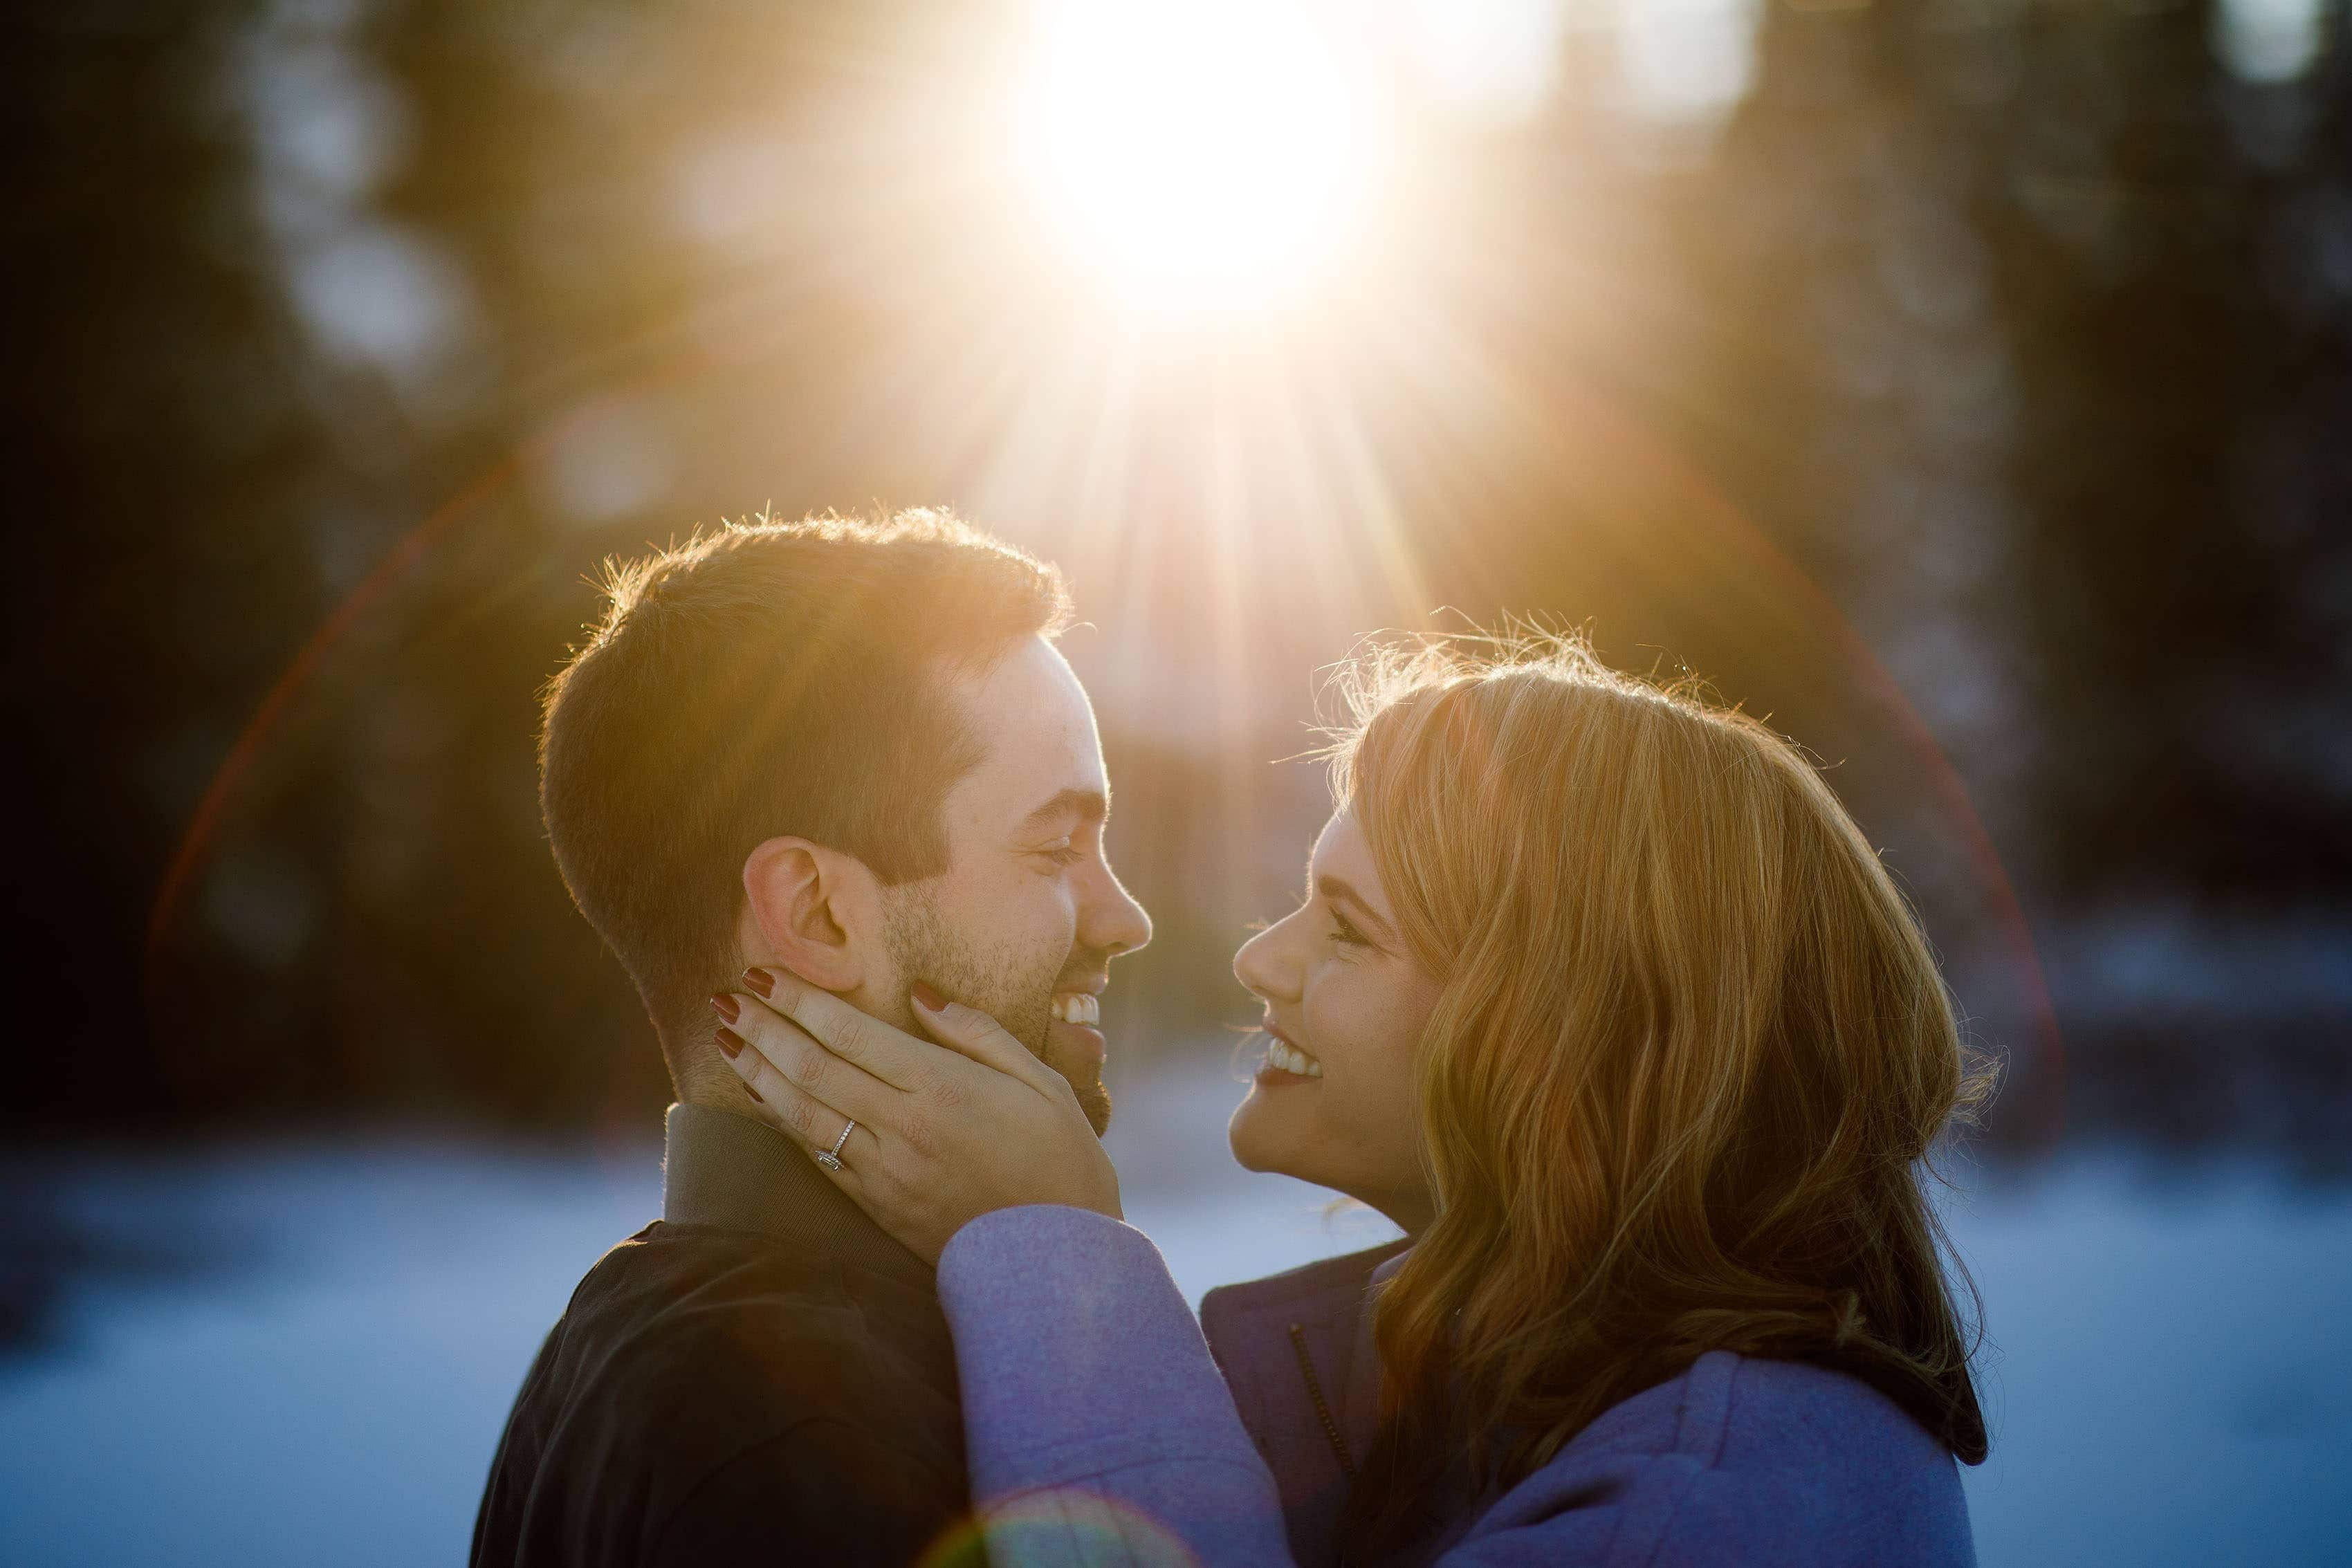 The future newlyweds embrace as the rays of sunlight disappear behind the trees during their fall engagement photos in Vail on Shrine Pass